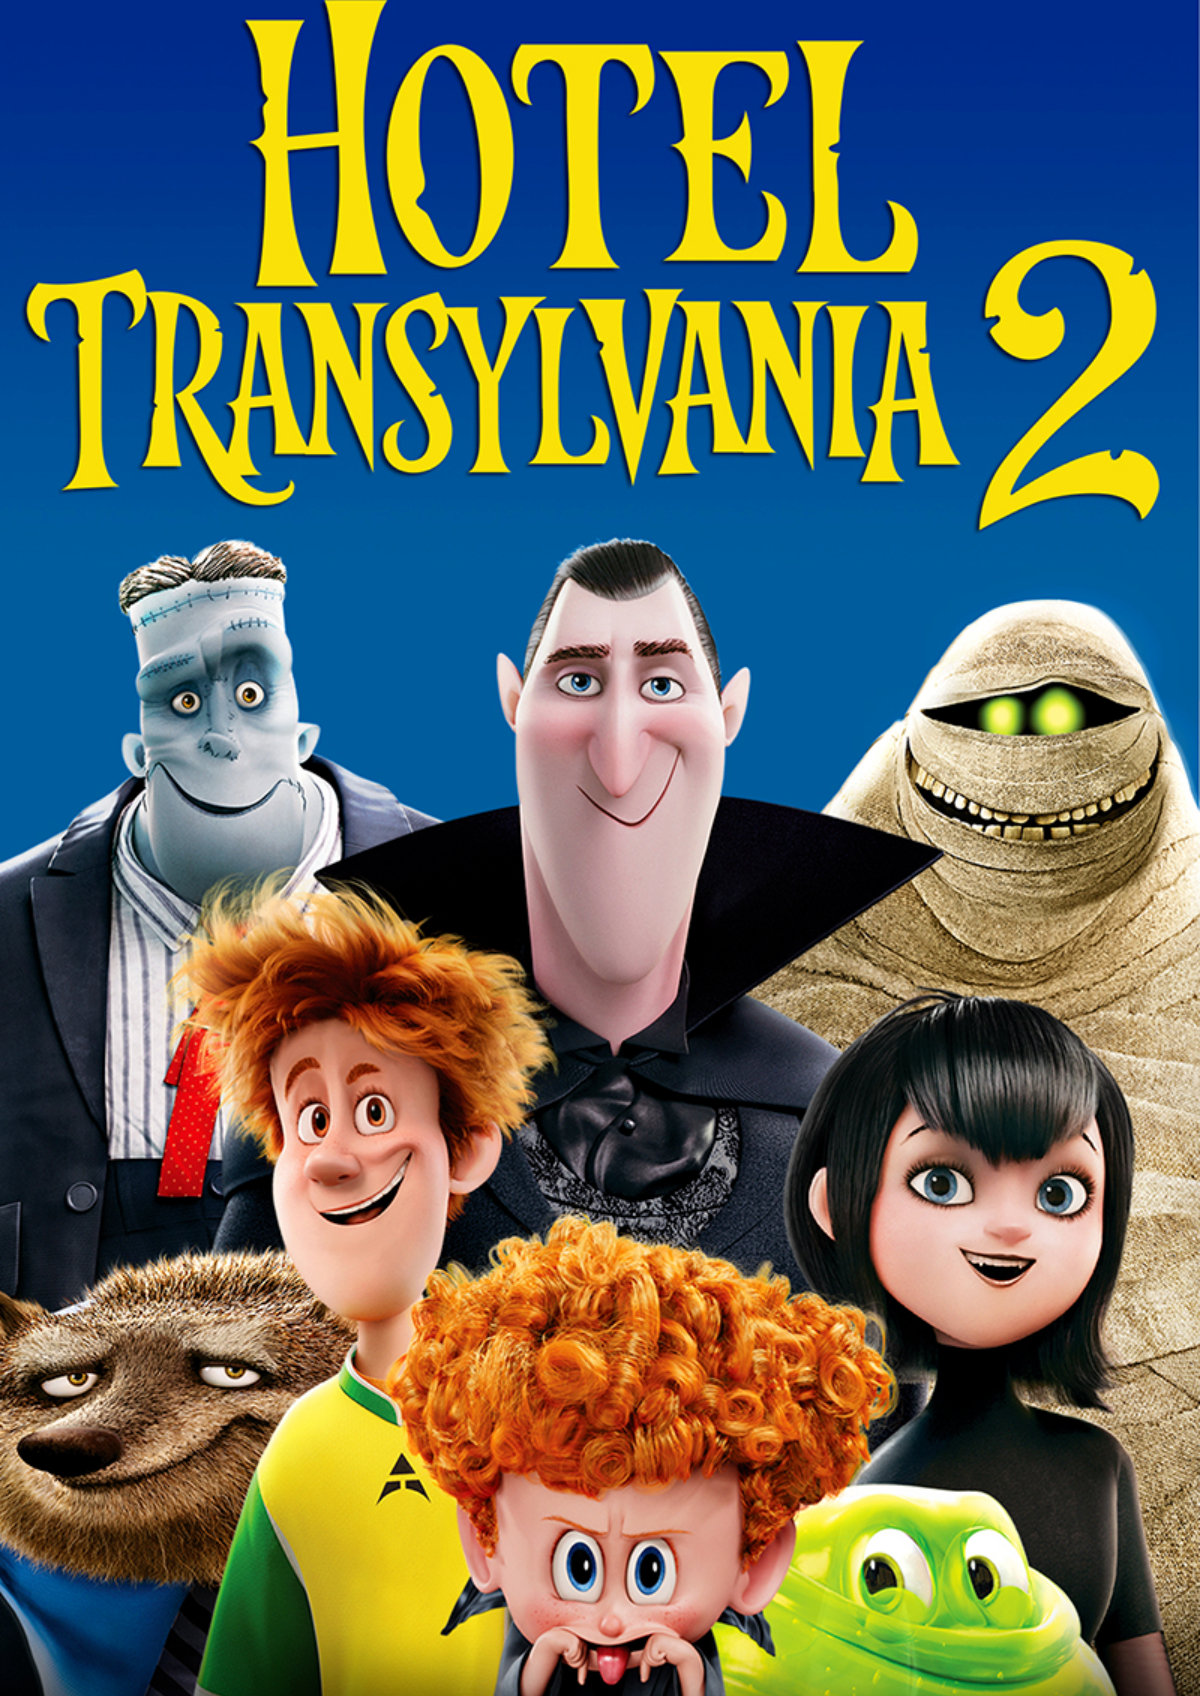 'Hotel Transylvania 2' movie poster